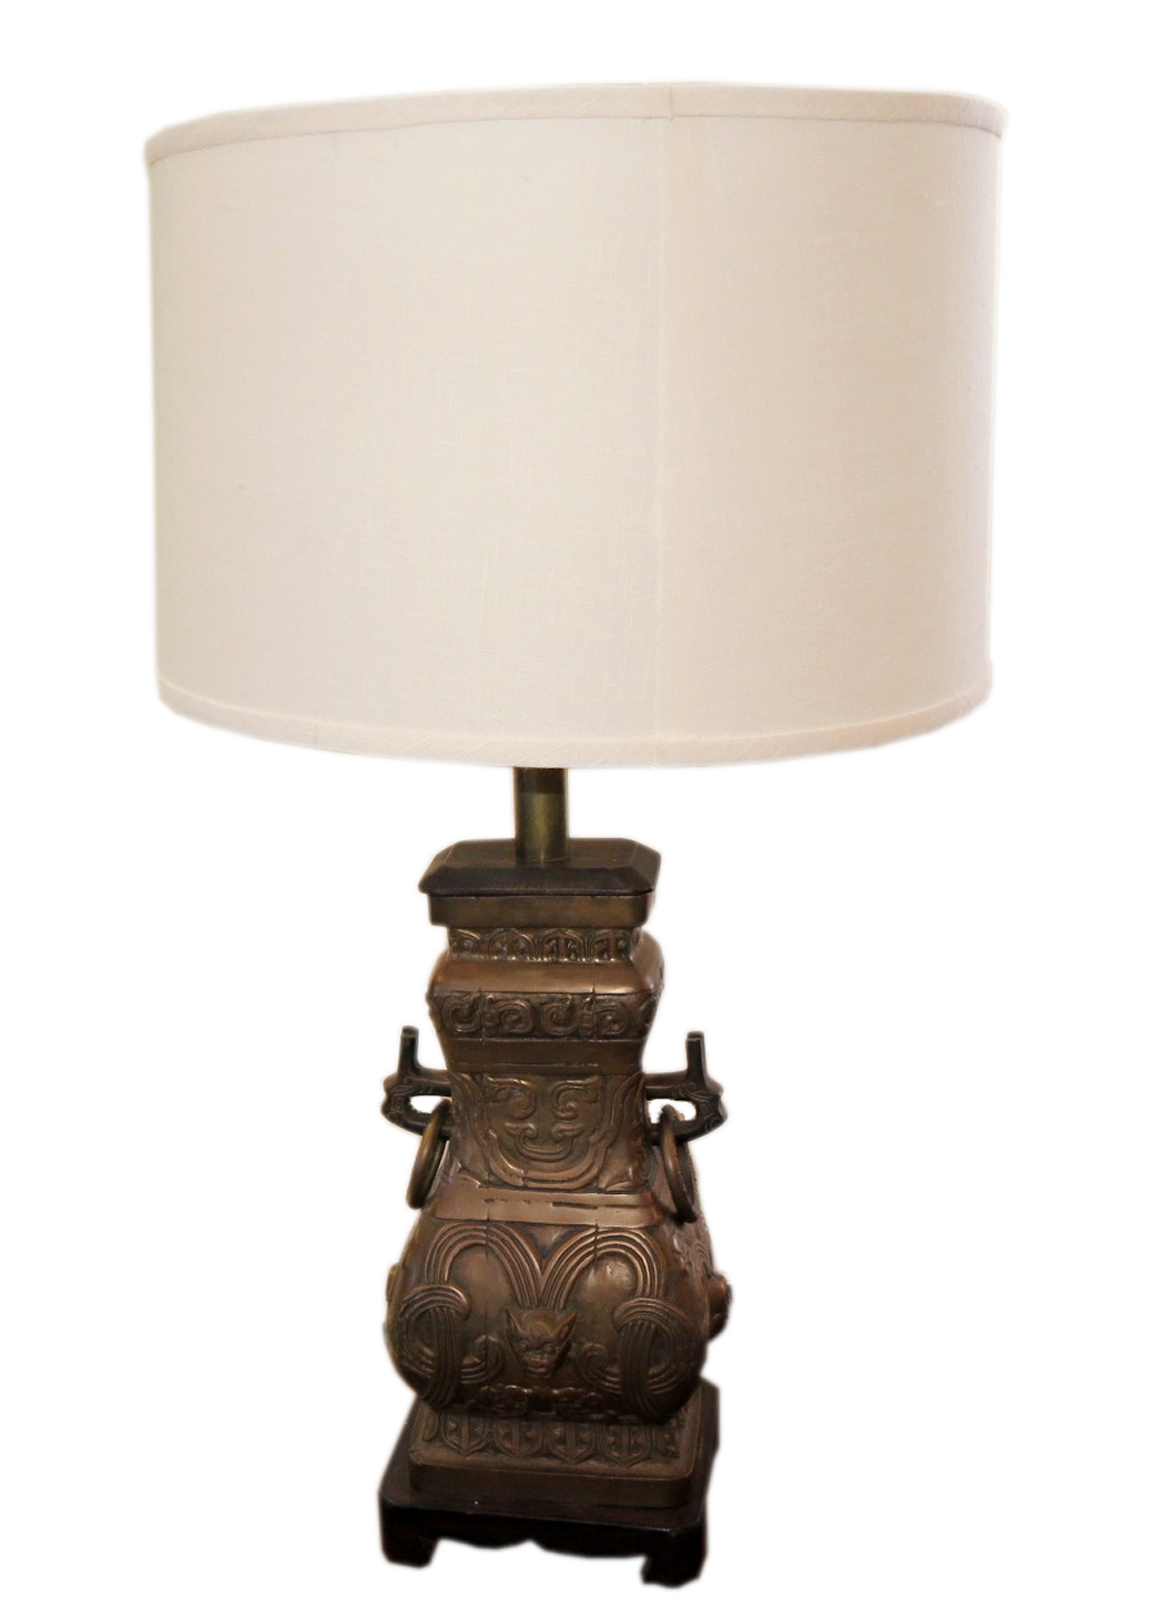 Superbe Chic Antique Bronze Table Lamp Over The Top